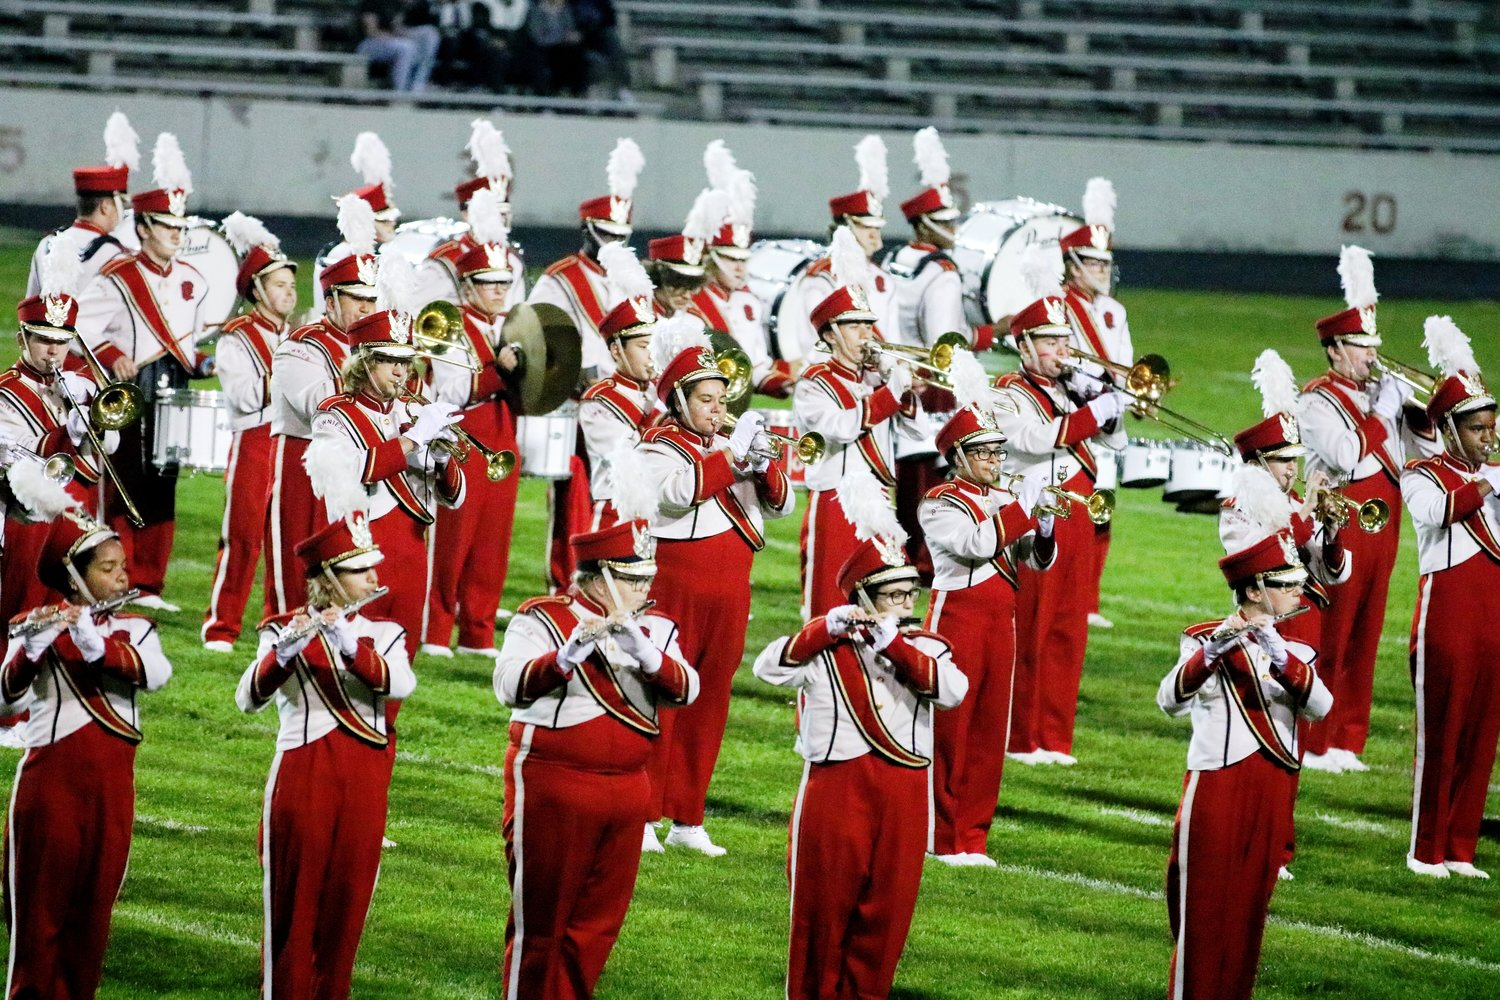 Townie marching band at Pierce Stadium